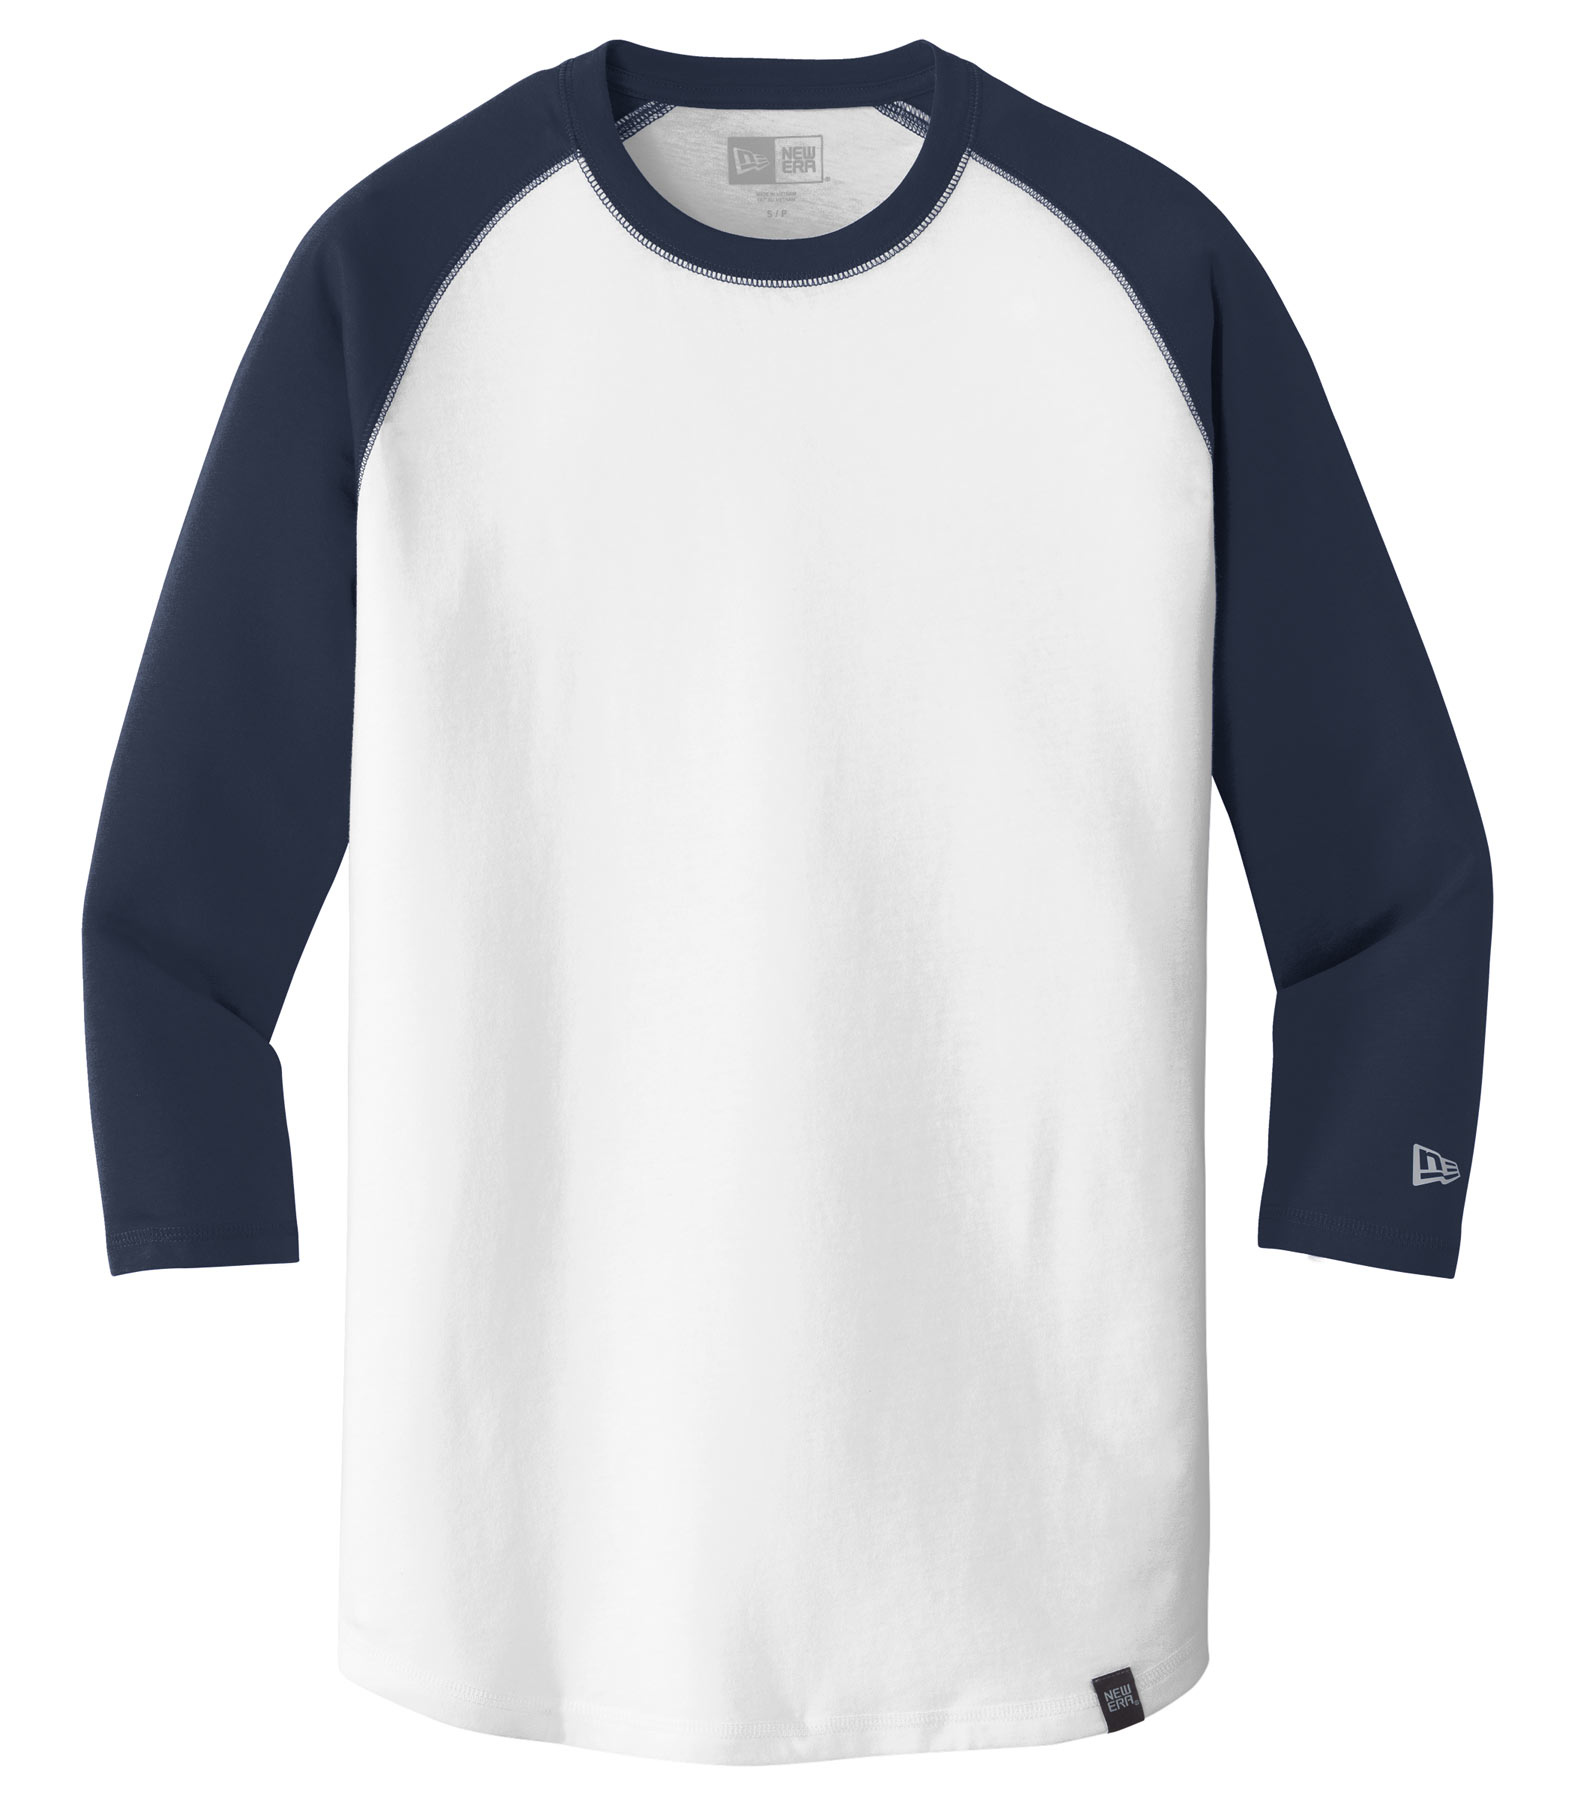 d943d55d Custom New Era® Mens Heritage Blend 3/4 Sleeve Baseball Raglan Tee